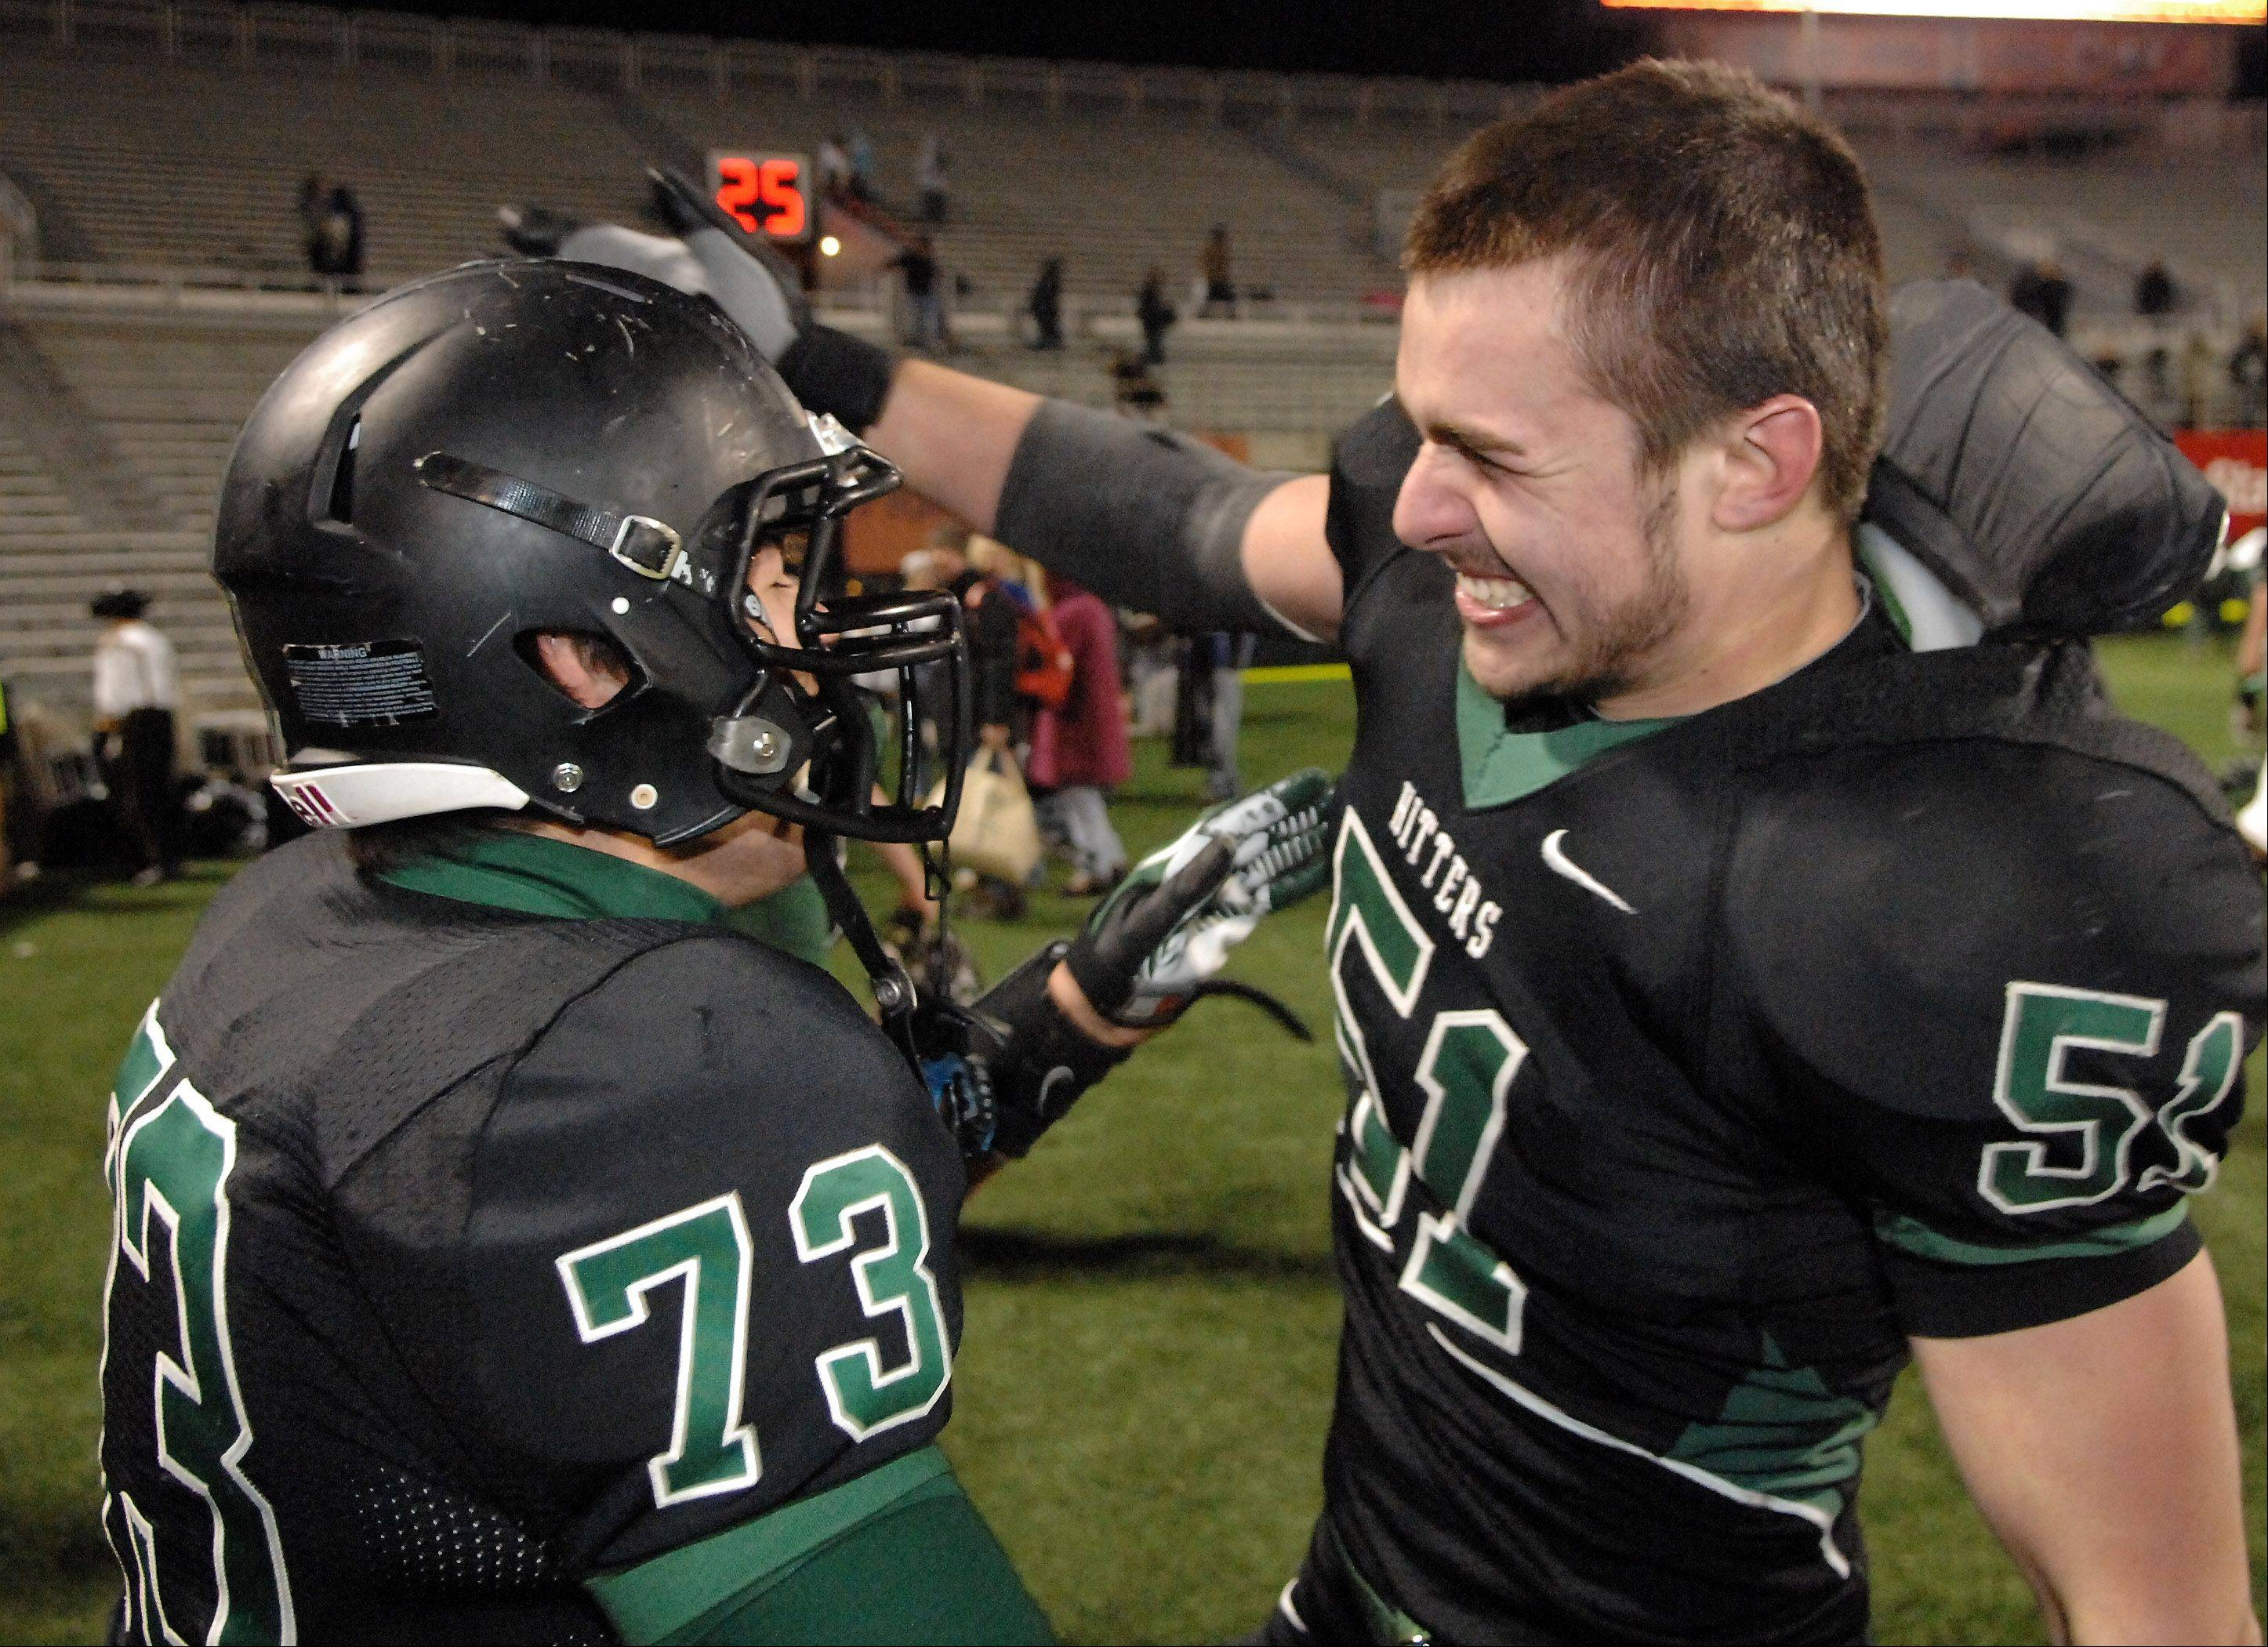 Glenbard West's Nick Garland, 51, grabs teammate Alex Morreale, 73, after winning the Class 7A state title game at Memorial Stadium in Champaign Saturday.